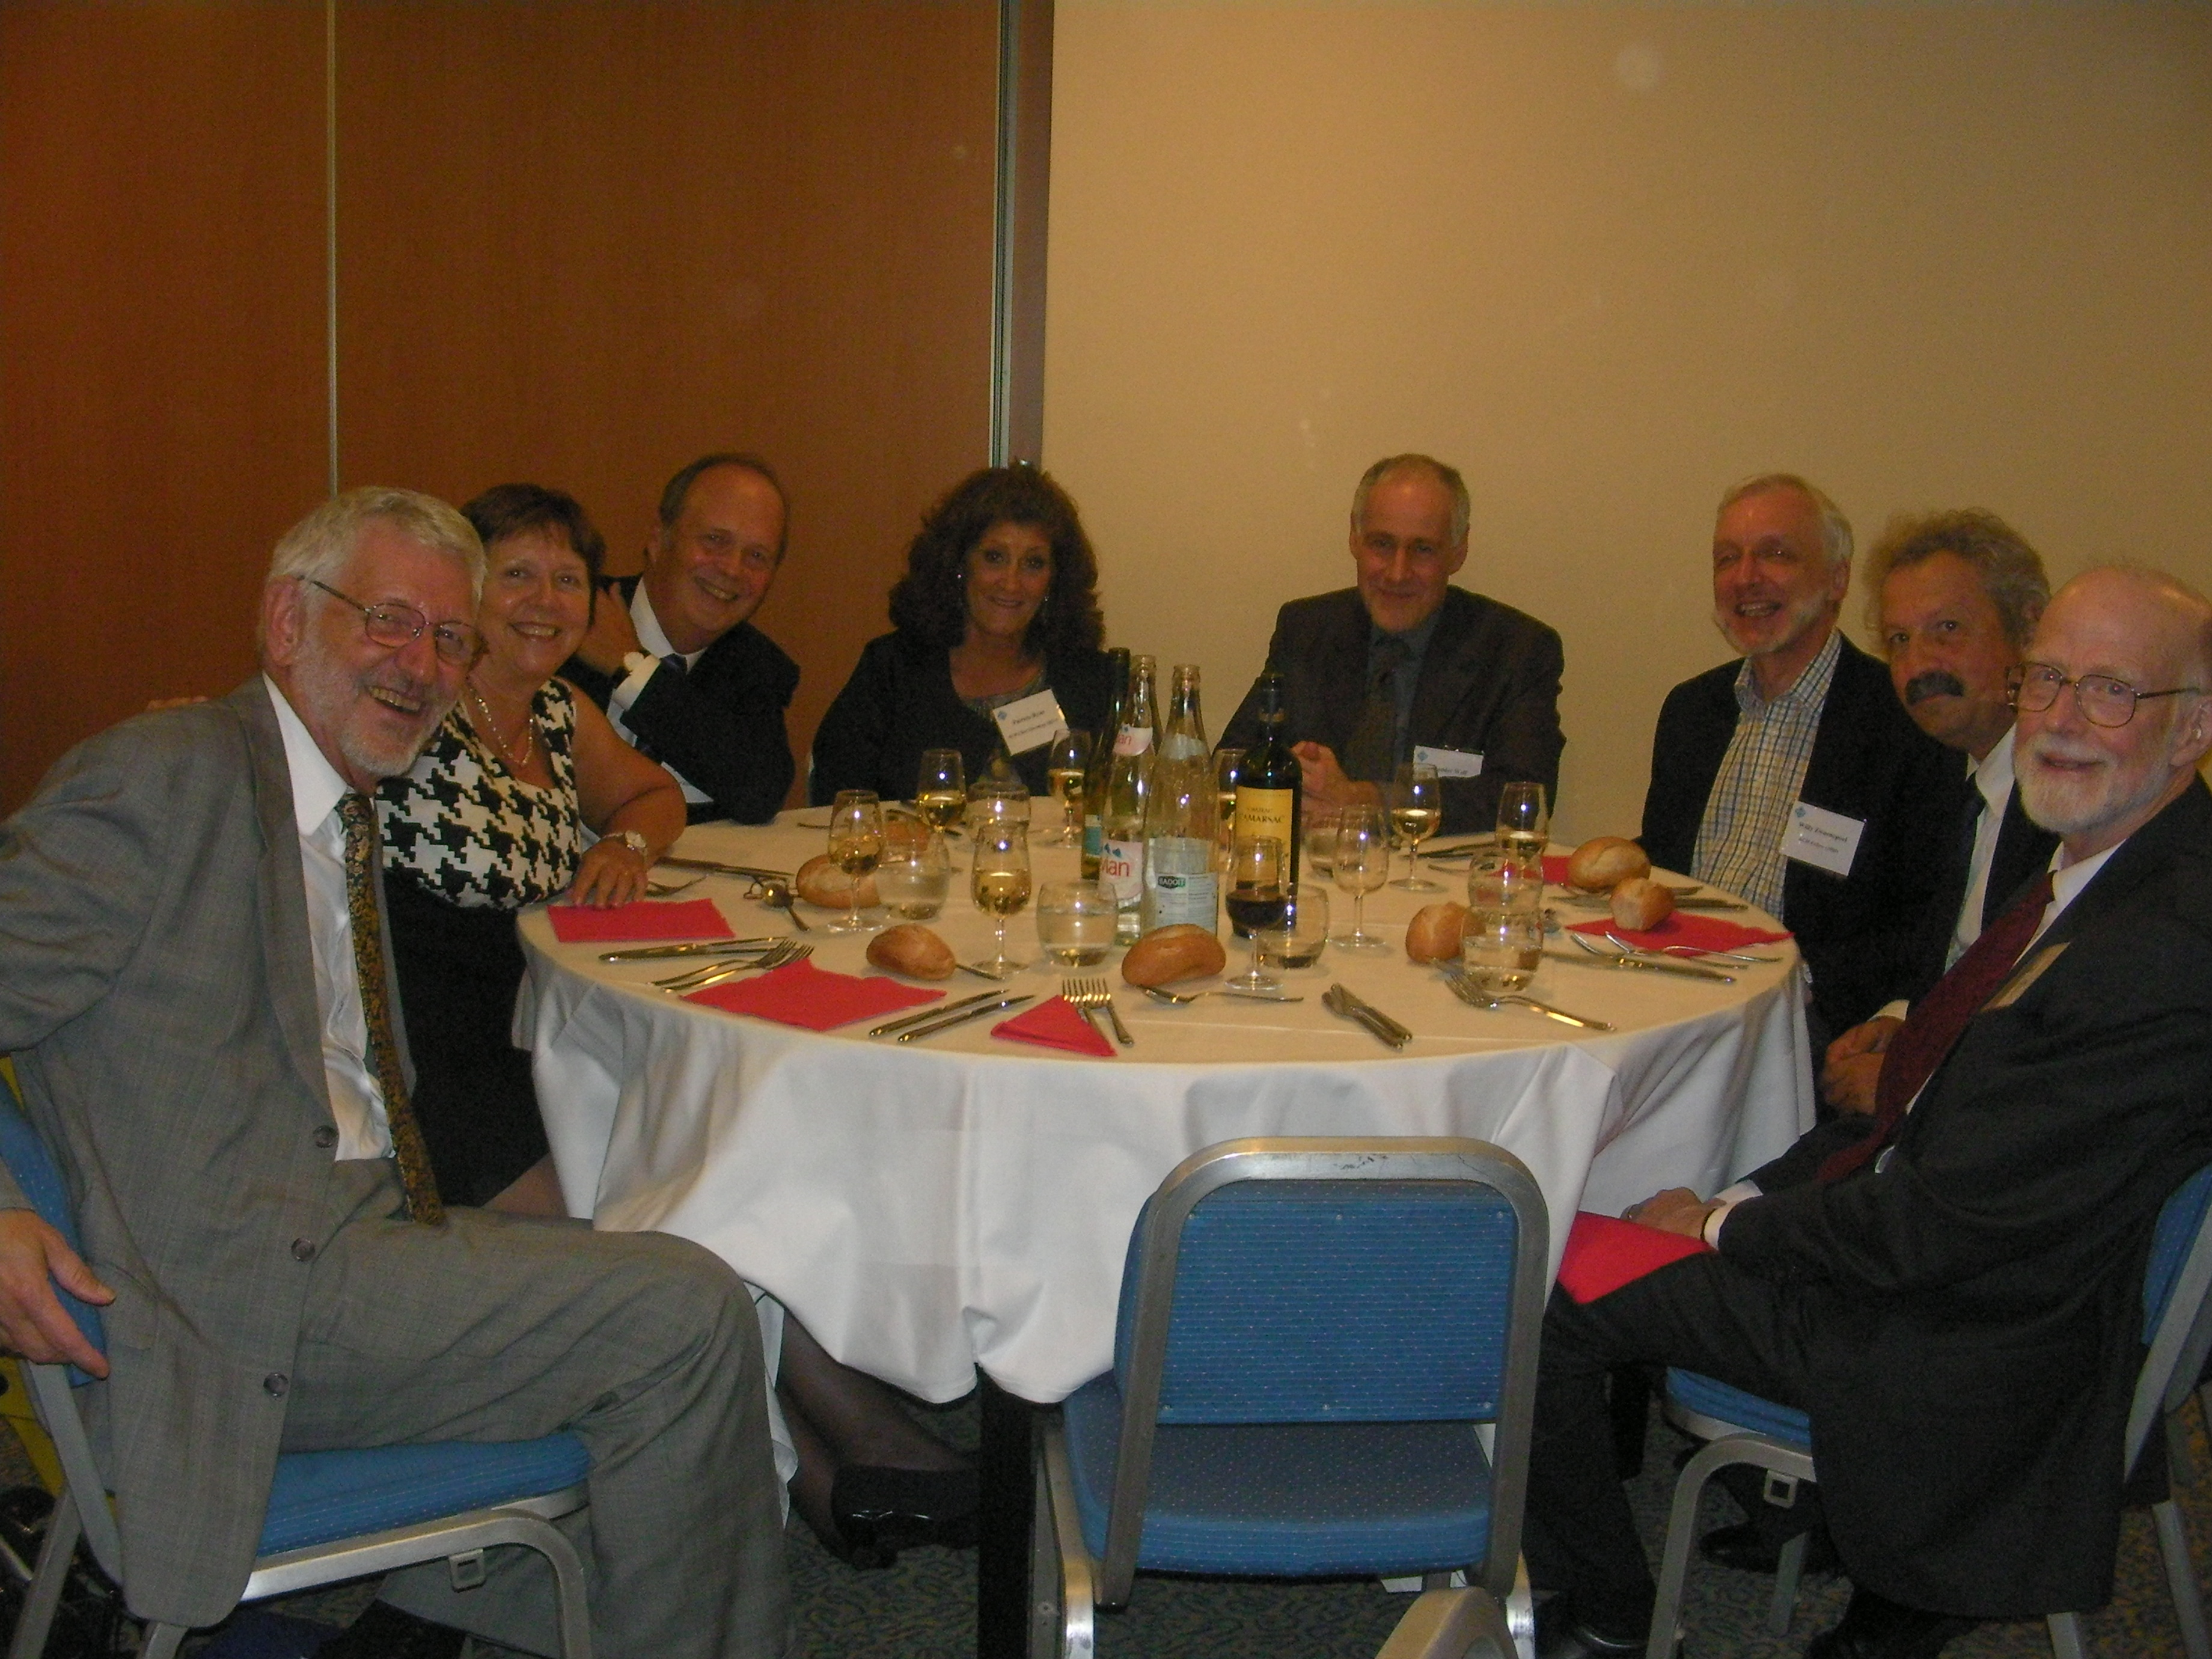 ACM leadership and guests at ECSS 2009 in Paris